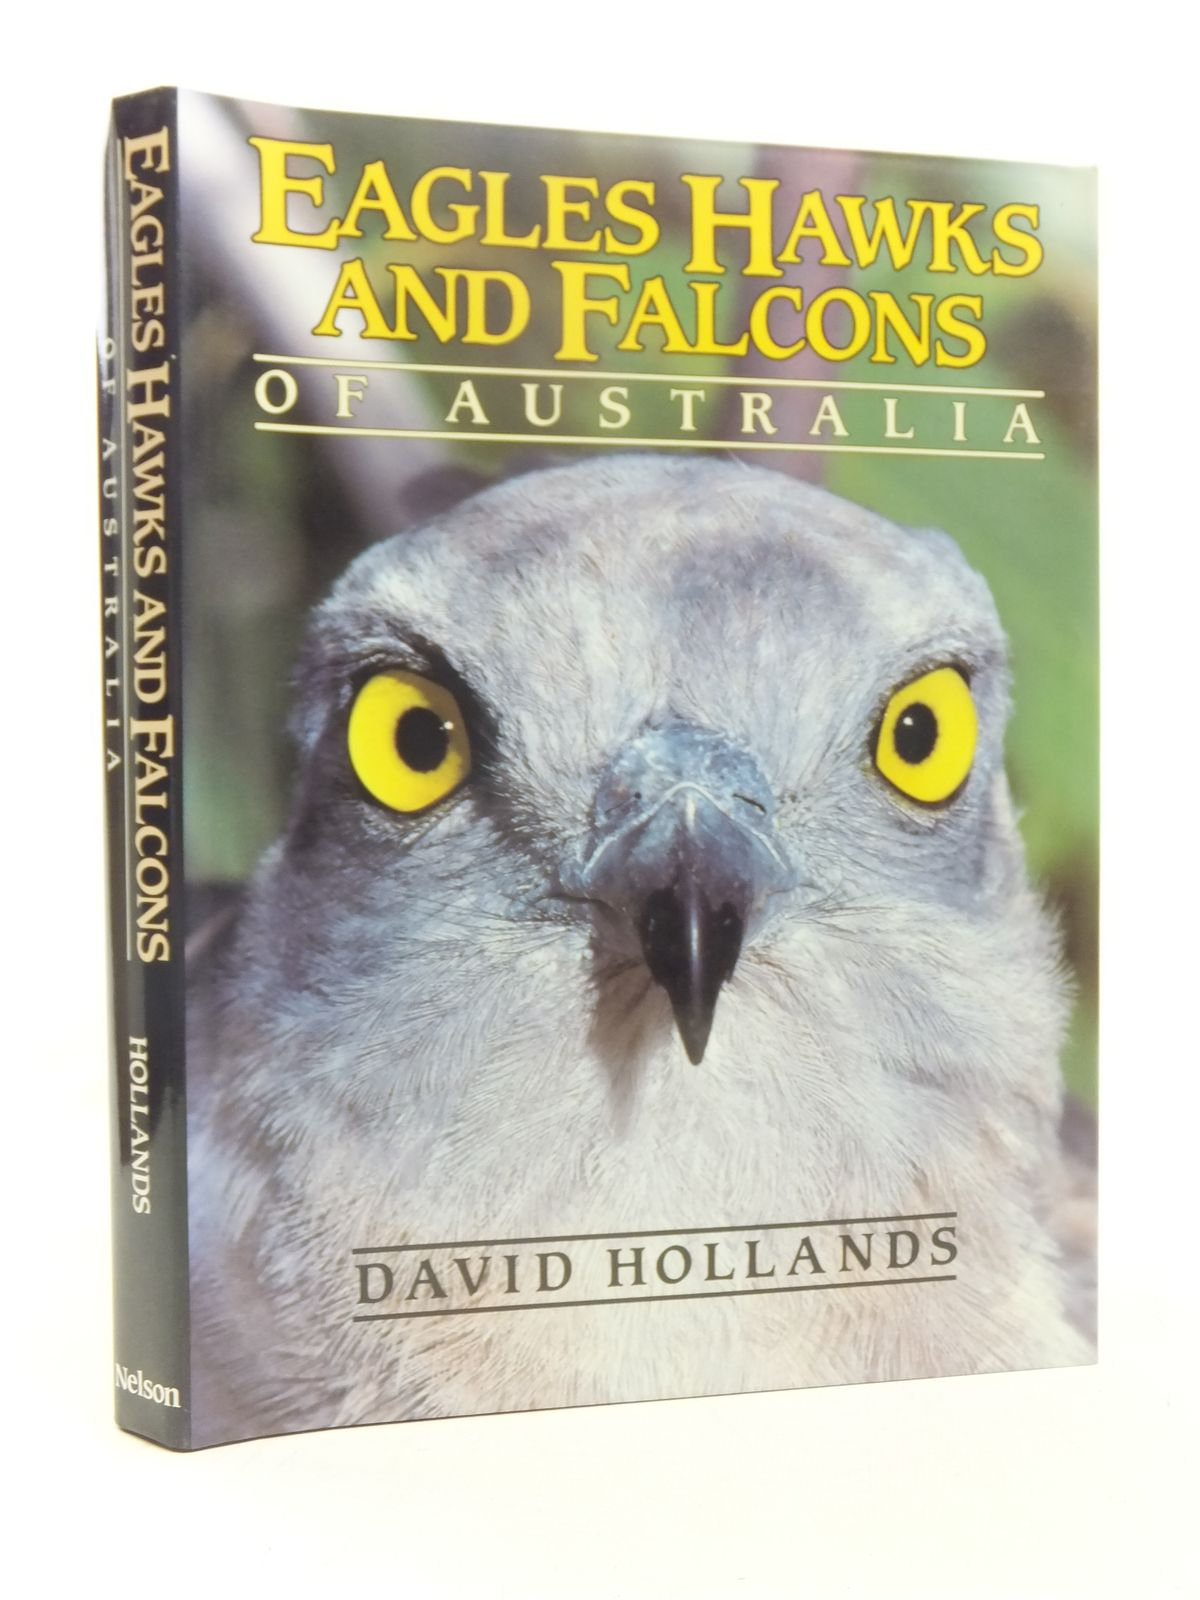 Photo of EAGLES, HAWKS AND FALCONS OF AUSTRALIA written by Hollands, David published by Nelson (STOCK CODE: 1607370)  for sale by Stella & Rose's Books